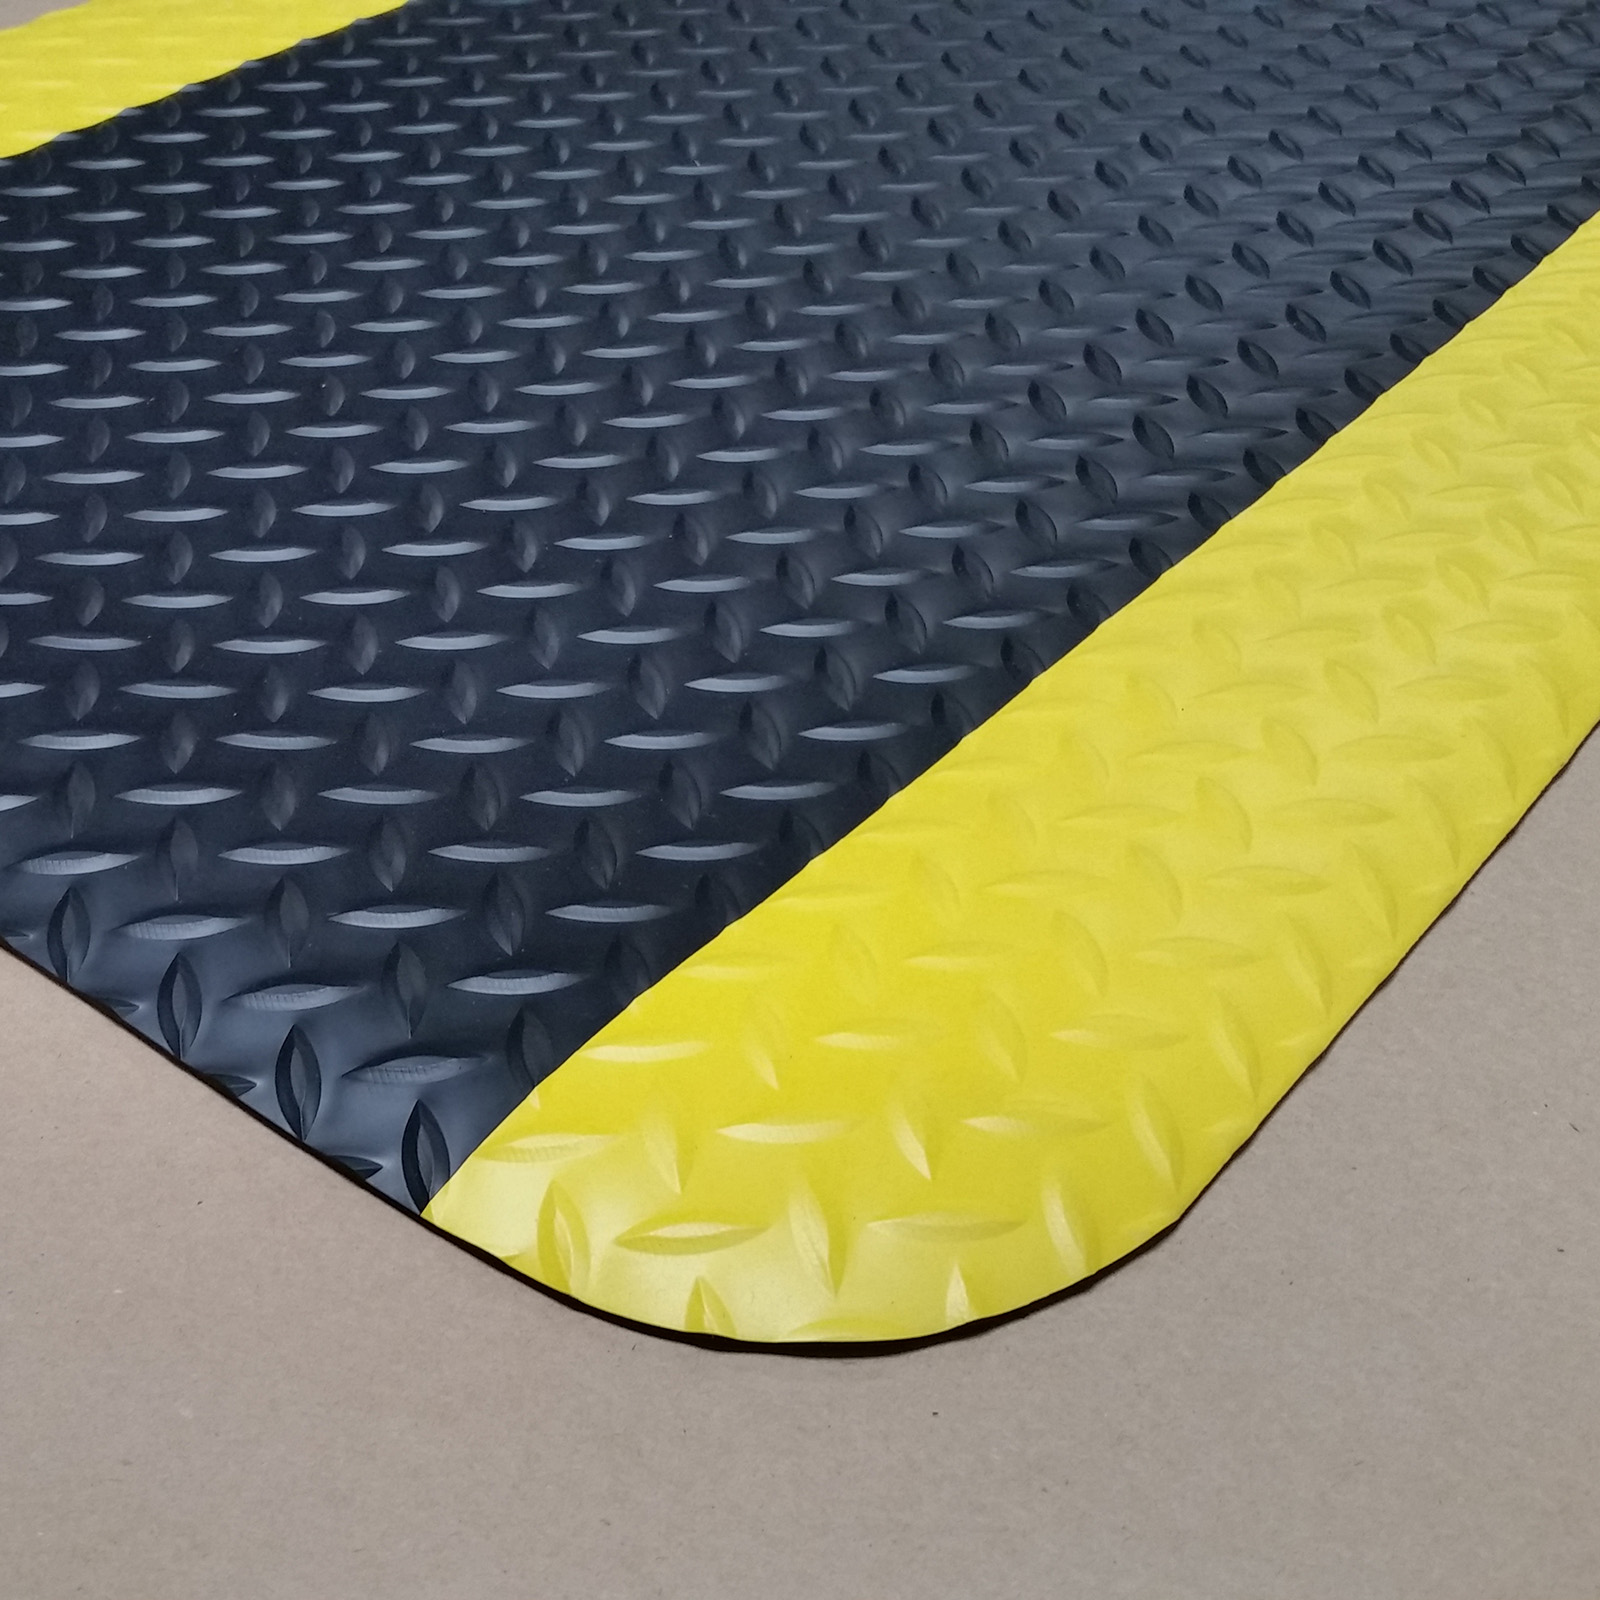 Cactus Mat 1053R-3 floor mat, anti-fatigue